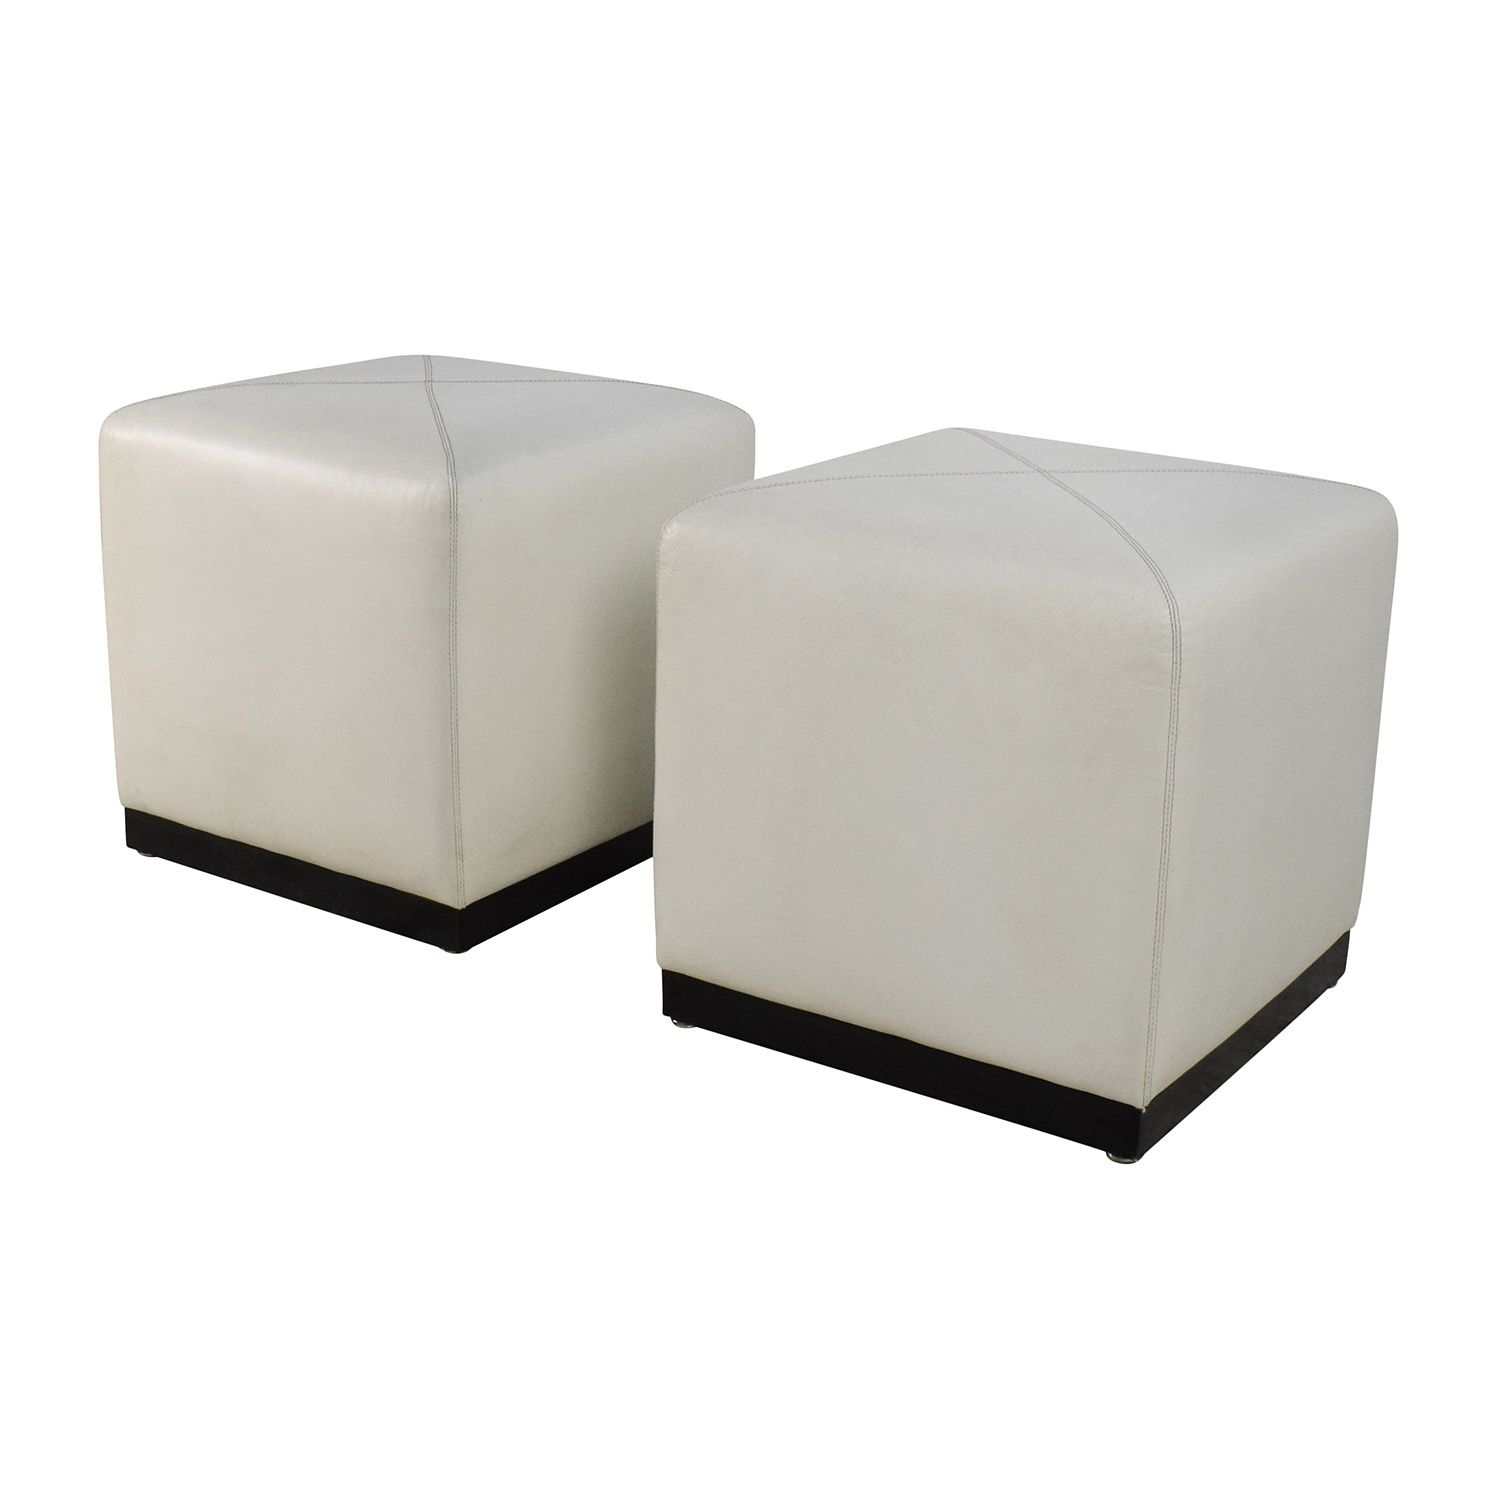 68 Off Pair Of White Leather Ottoman Cubes Storage Leather Ottoman White Leather Ottoman Cube Ottoman